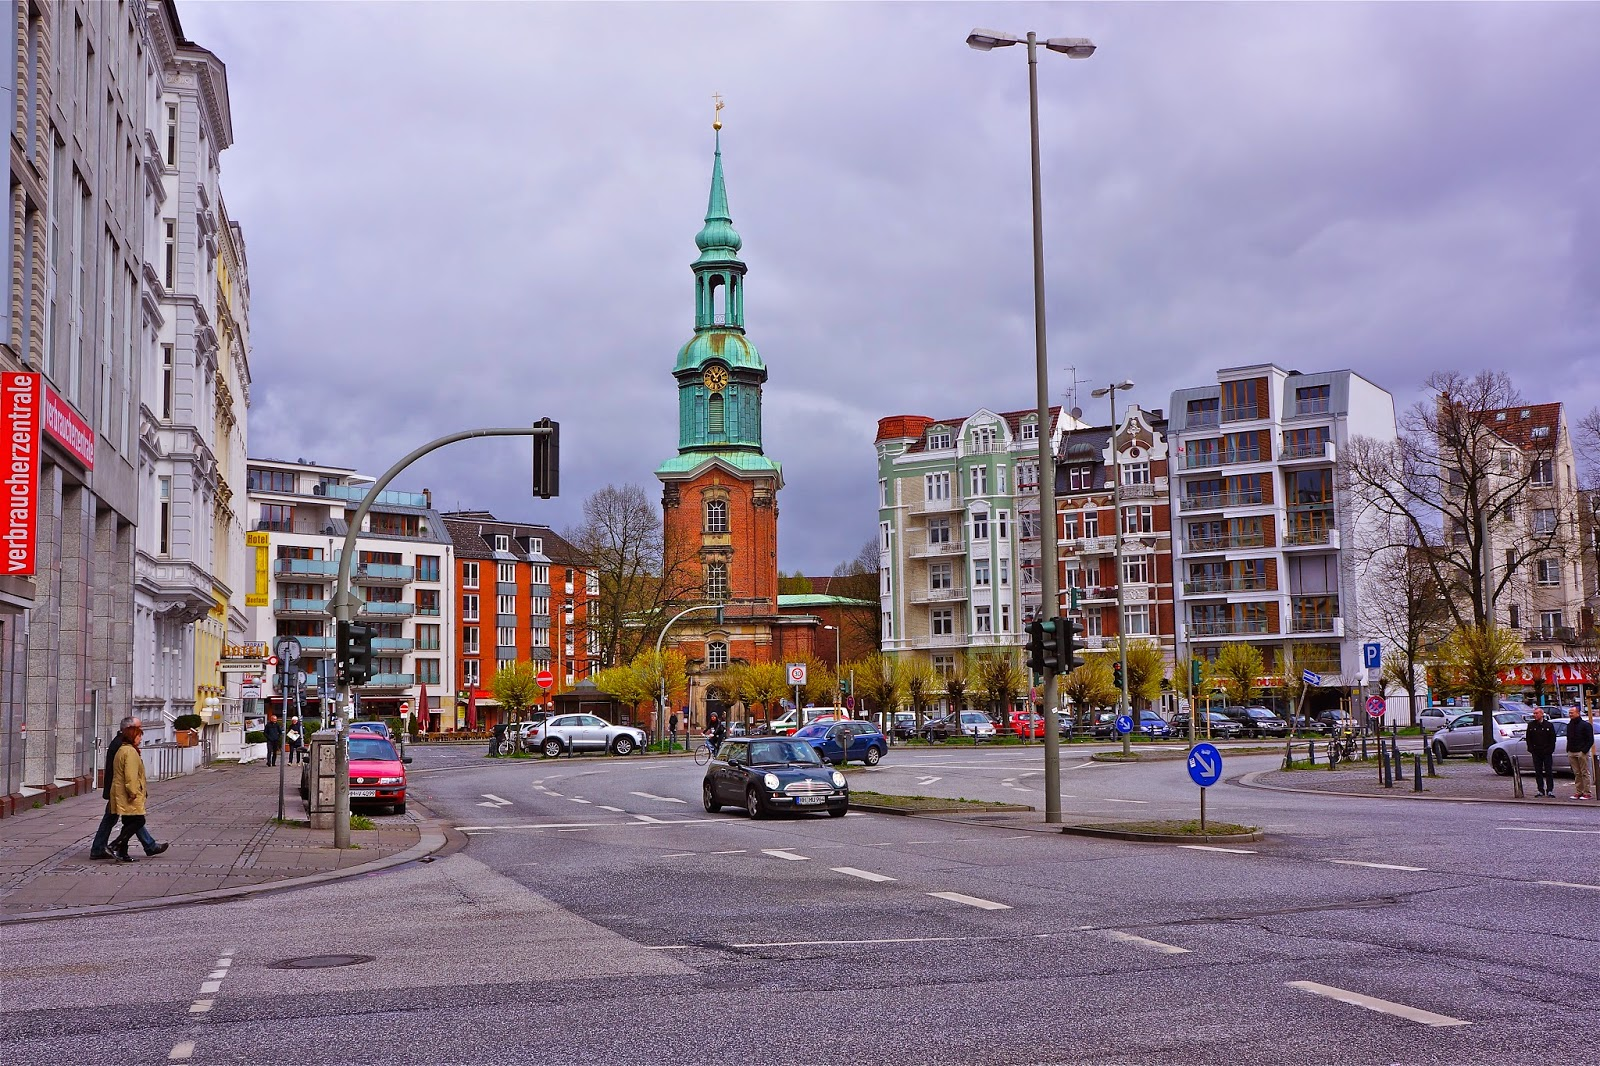 Picture of St Georgs Kirchhof in Hamburg, Germany.